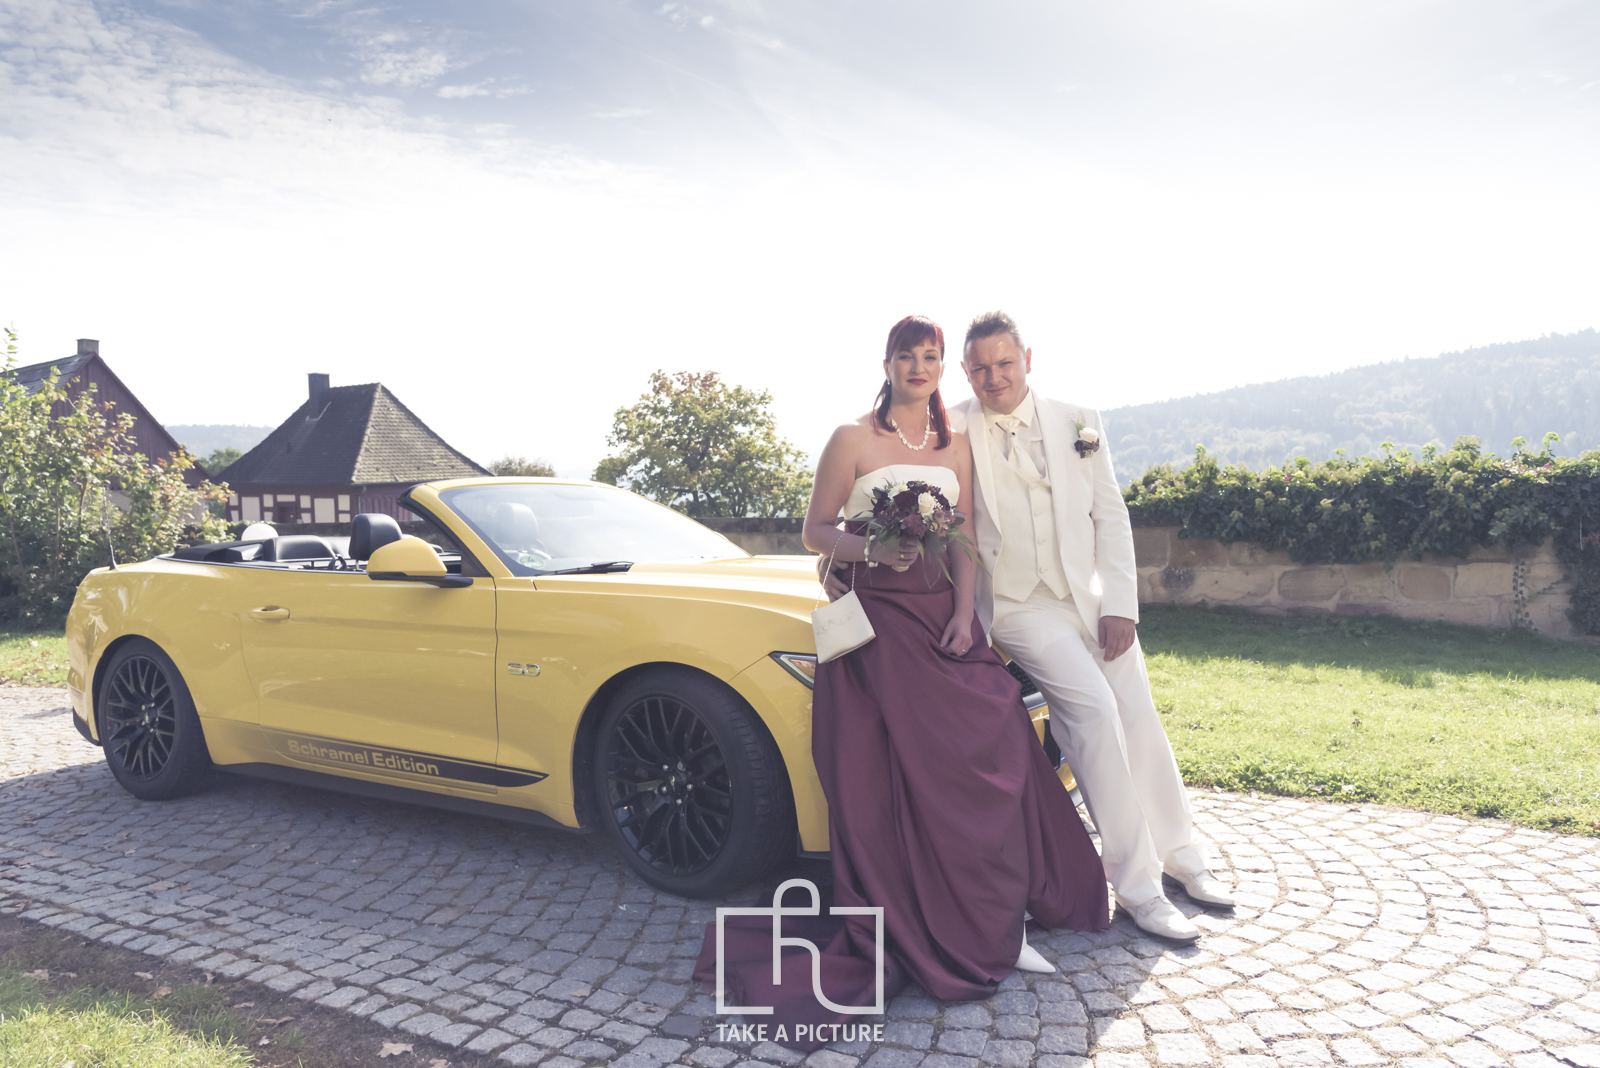 schwäbisch gmünd, lorch, aalen, take a picture, portrait, hochzeit, business, event, fotografie, photography, portraitfotografie, hochzeitfotografie, businessfotografie, eventfotografie, land vehicle, motor vehicle, personal luxury car, convertible, outdoors, people, adult, car, togetherness, romance, horizontal, color image, design, mode of transport, status car, upper class, women, men, love - emotion, bonding, desire, sensuality, dating, flirting, love at first sight, life events, adults only, design professional, incidental people, day